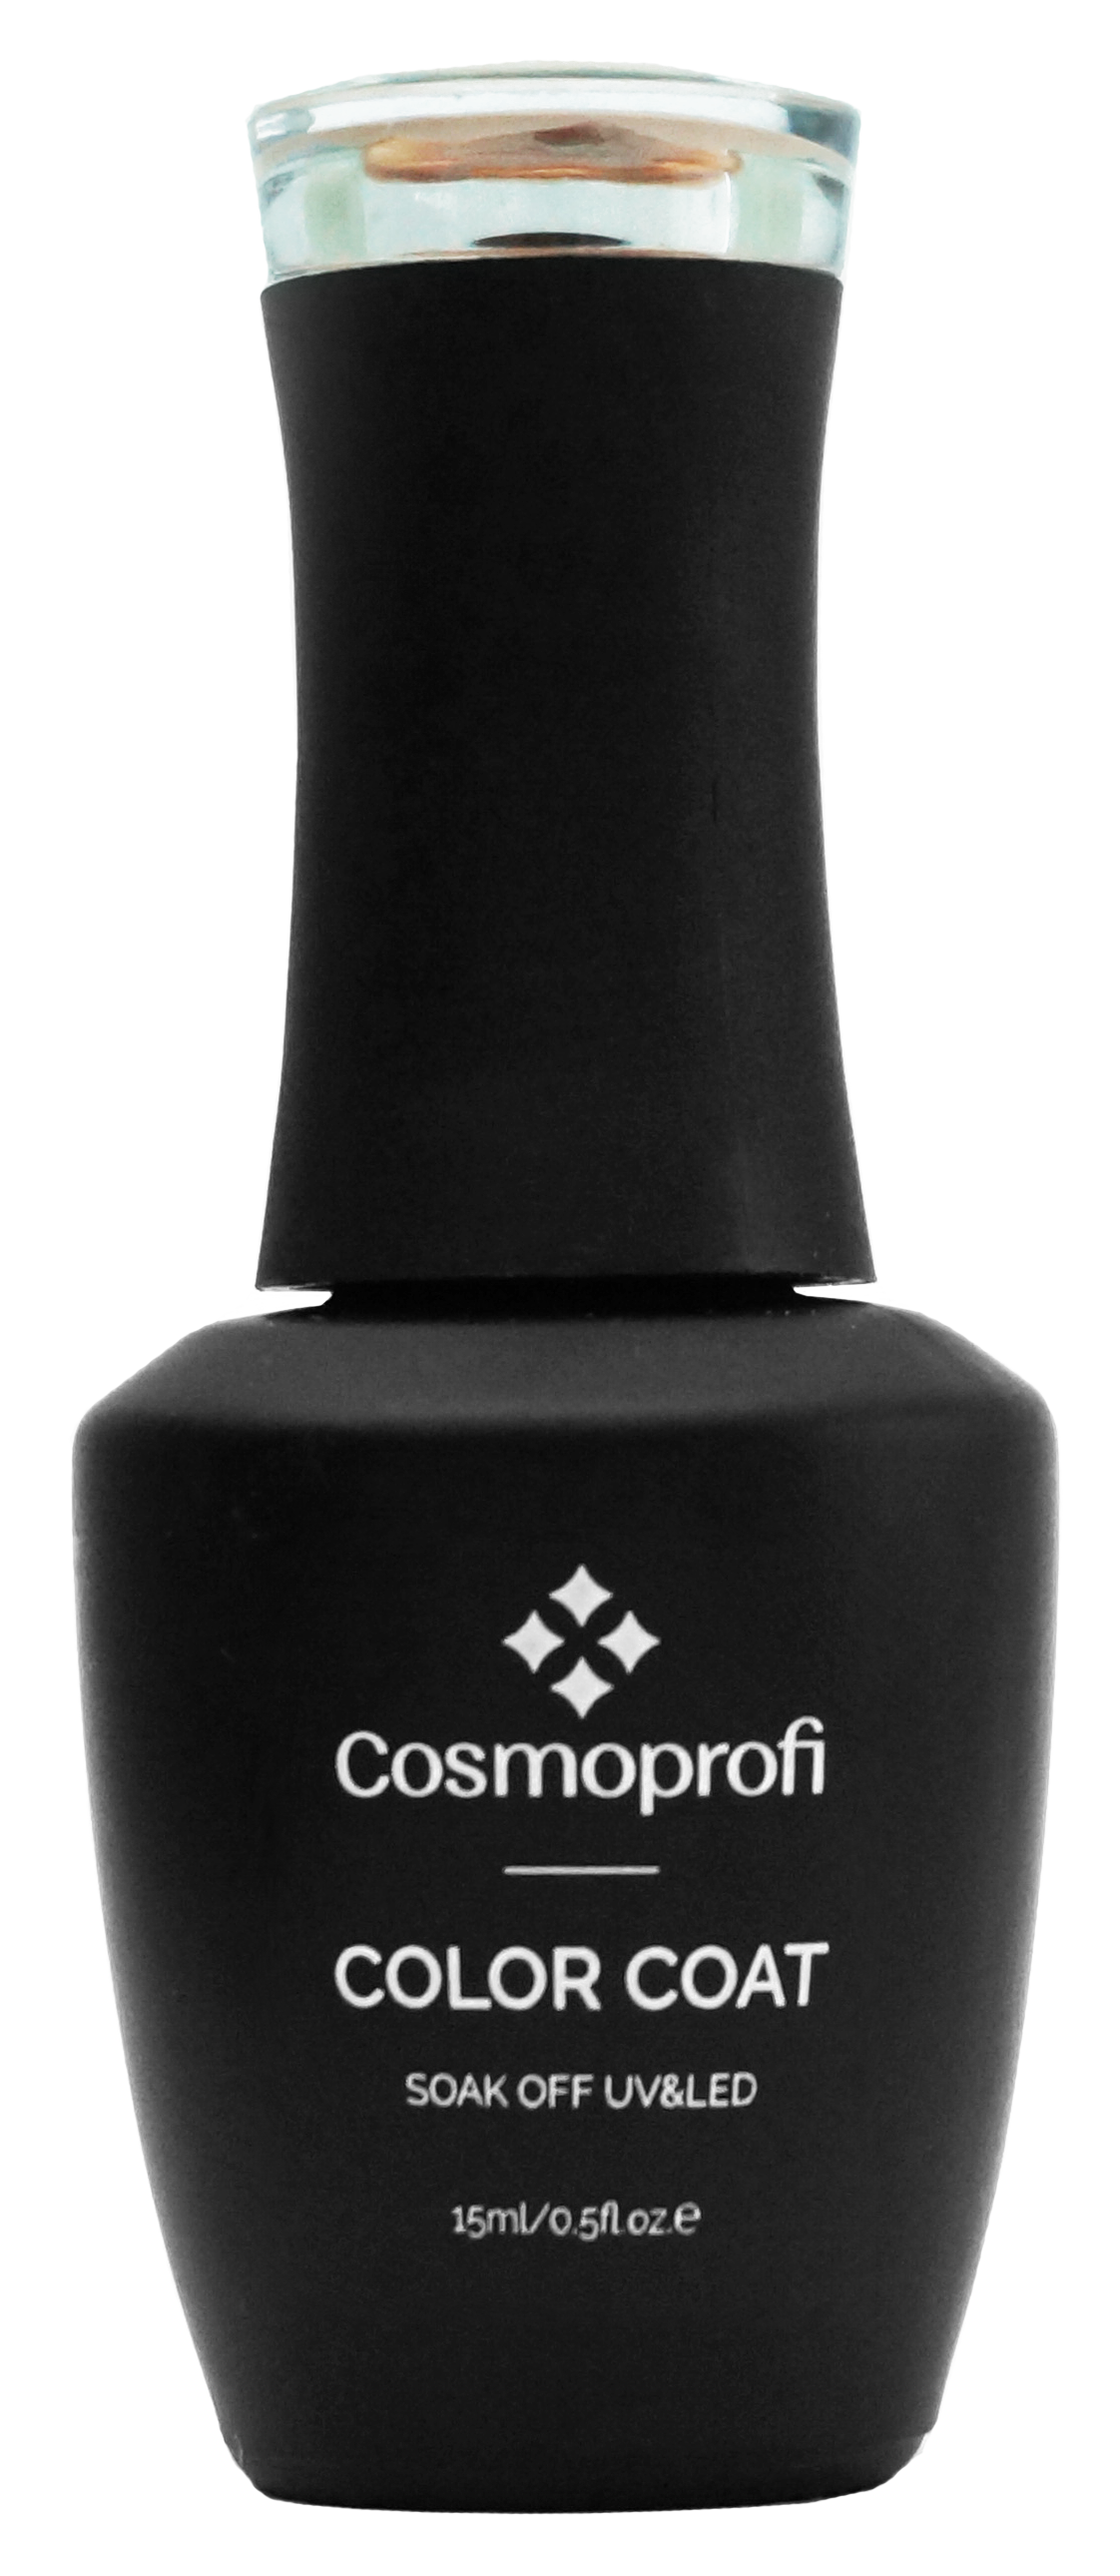 Гель-лак Cosmoprofi, Color coat № 123 - черный, 15 мл